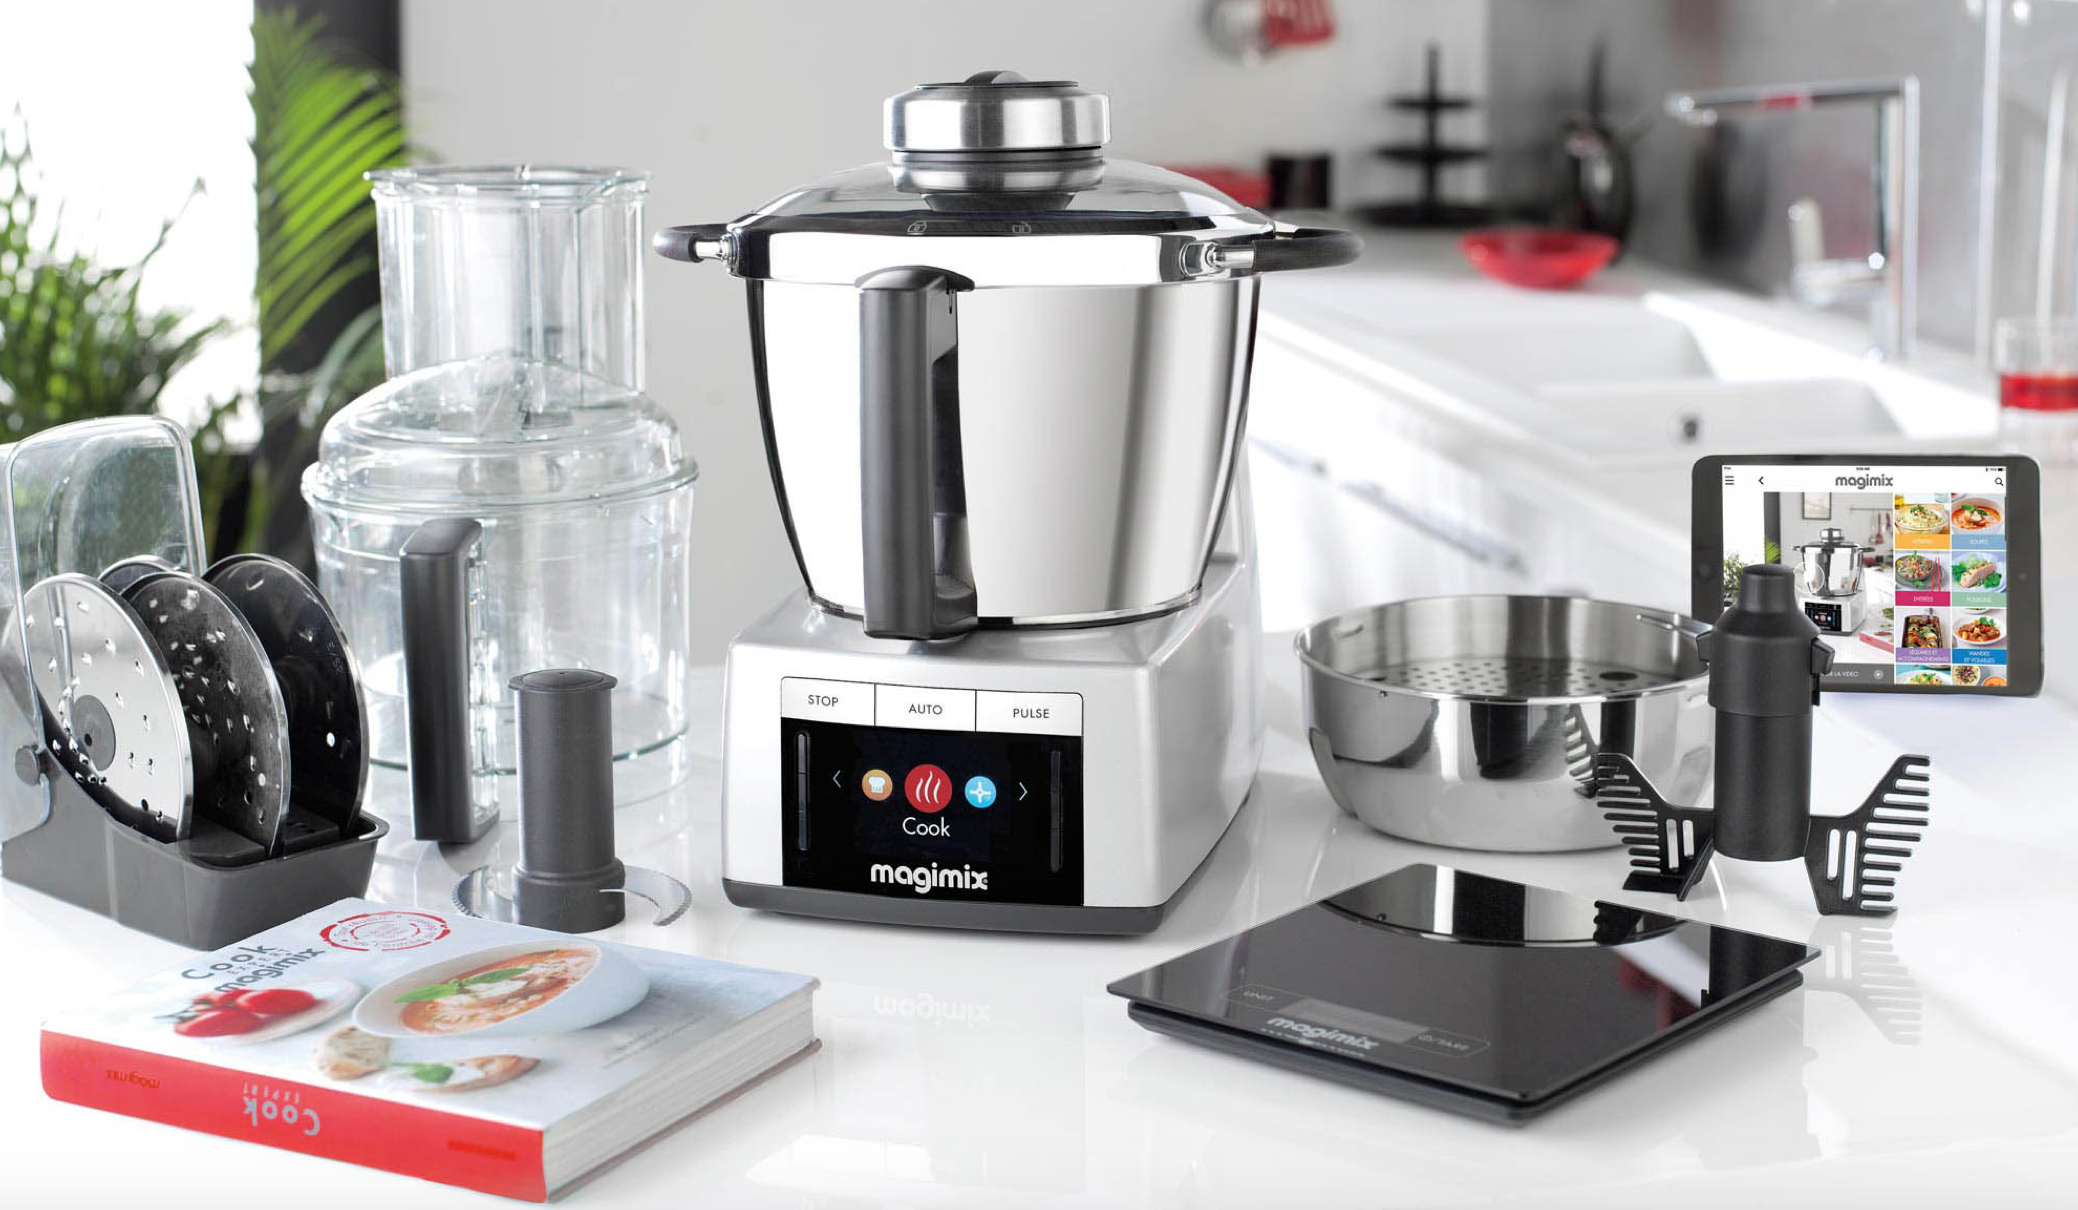 Magimix Cook Expert Product Review Cooking Food Processor Recipes Cooker